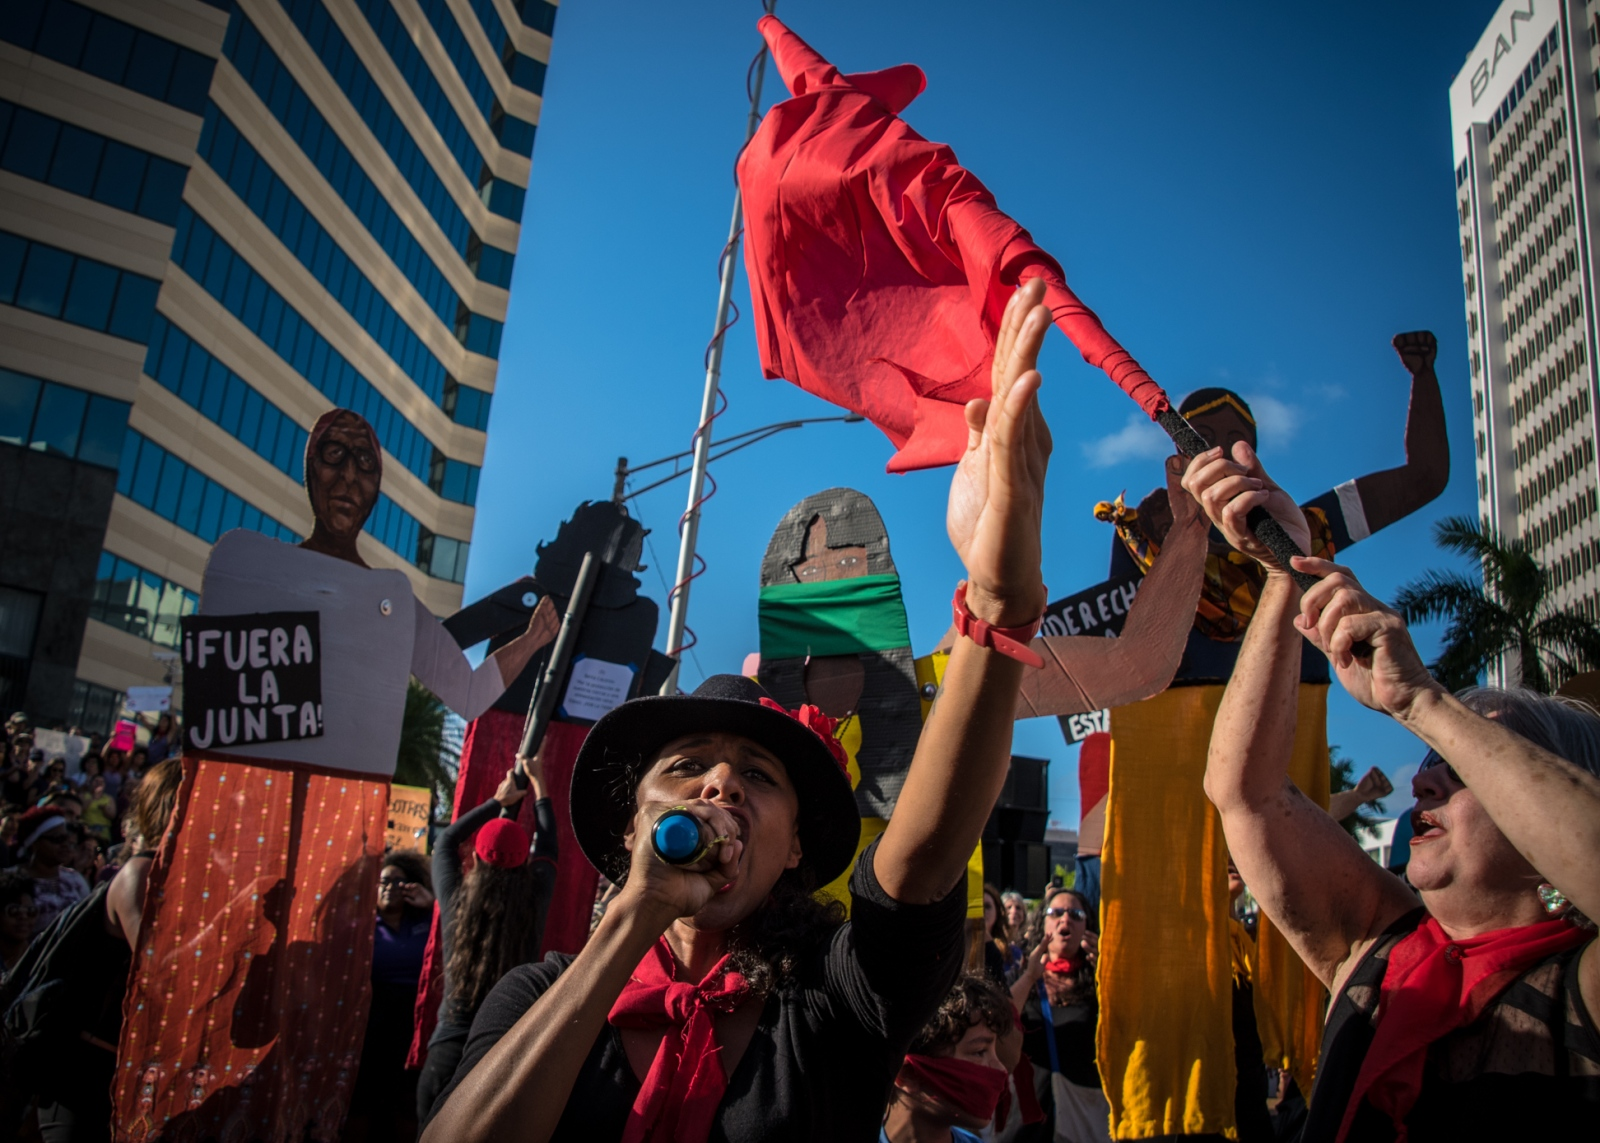 Papel Machete, a political puppeteer group, marches during the 2017 International Women Worker's Day in the Milla de Oro, Hato Rey, Puerto Rico.